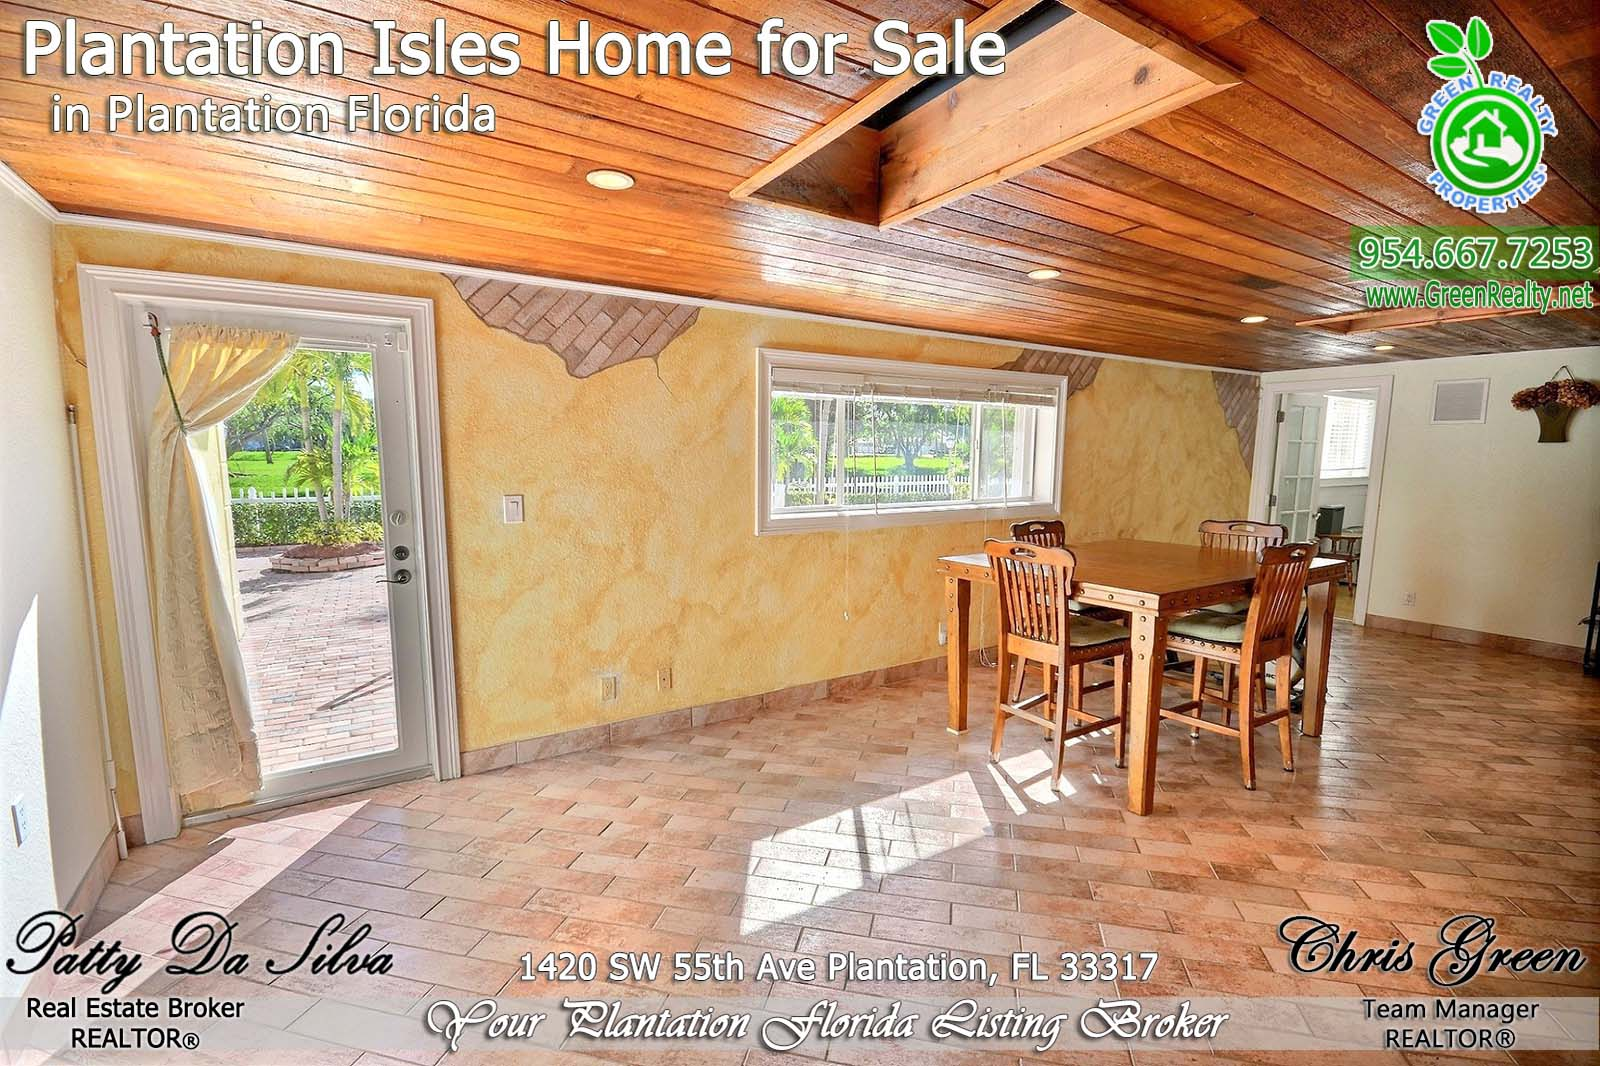 11 Plantation Florida Homes For Sale (2)